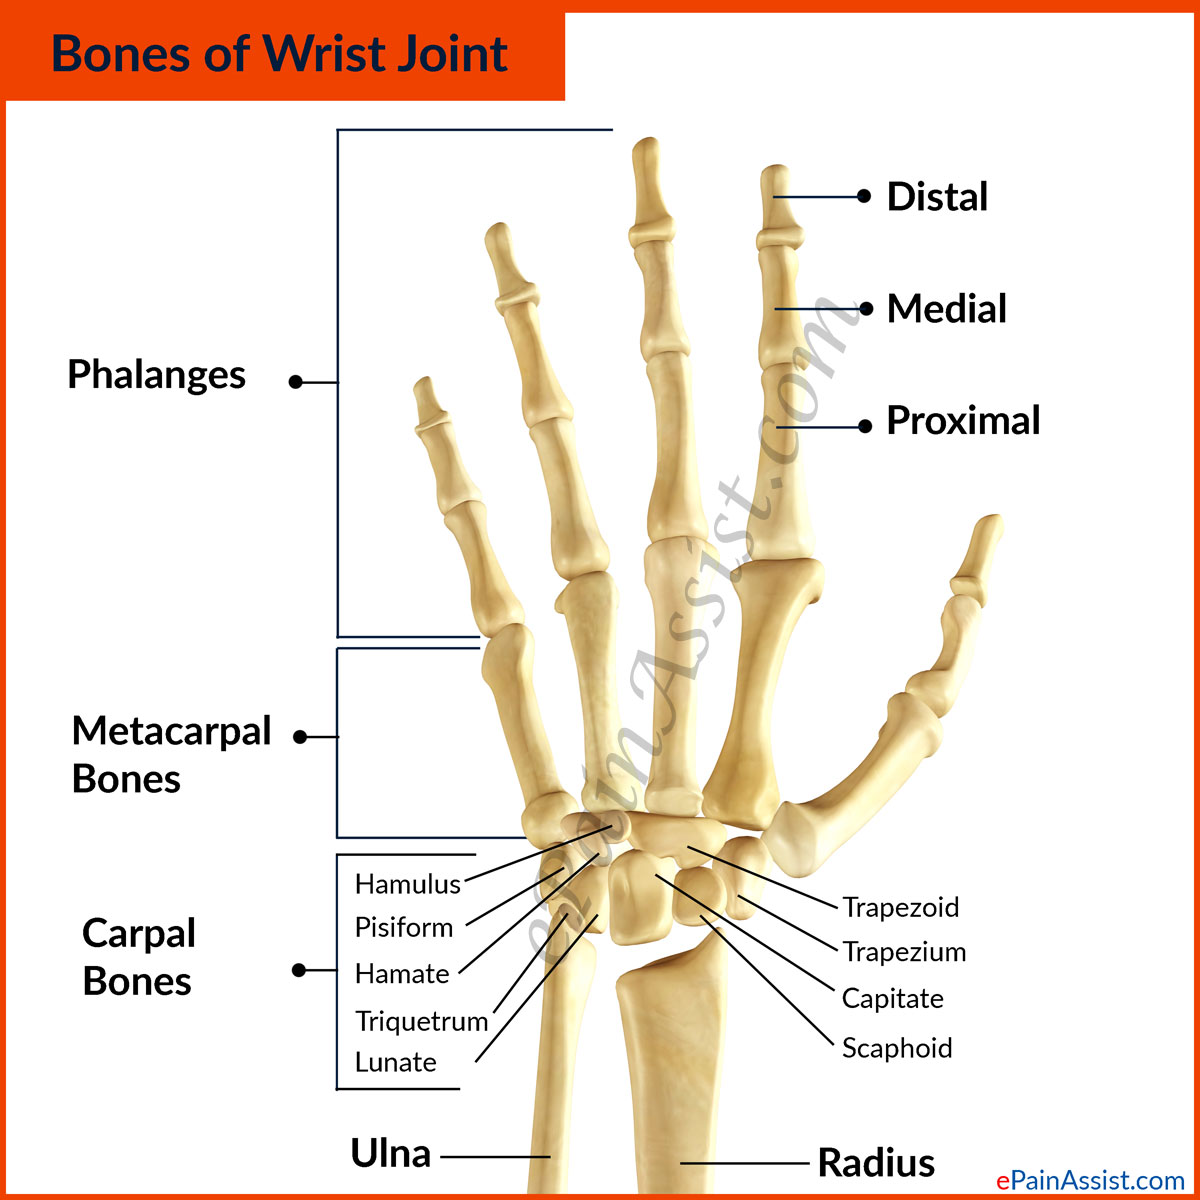 Wrist Joint Anatomy|Bones, Movements, Ligaments, Tendons- Abduction ...